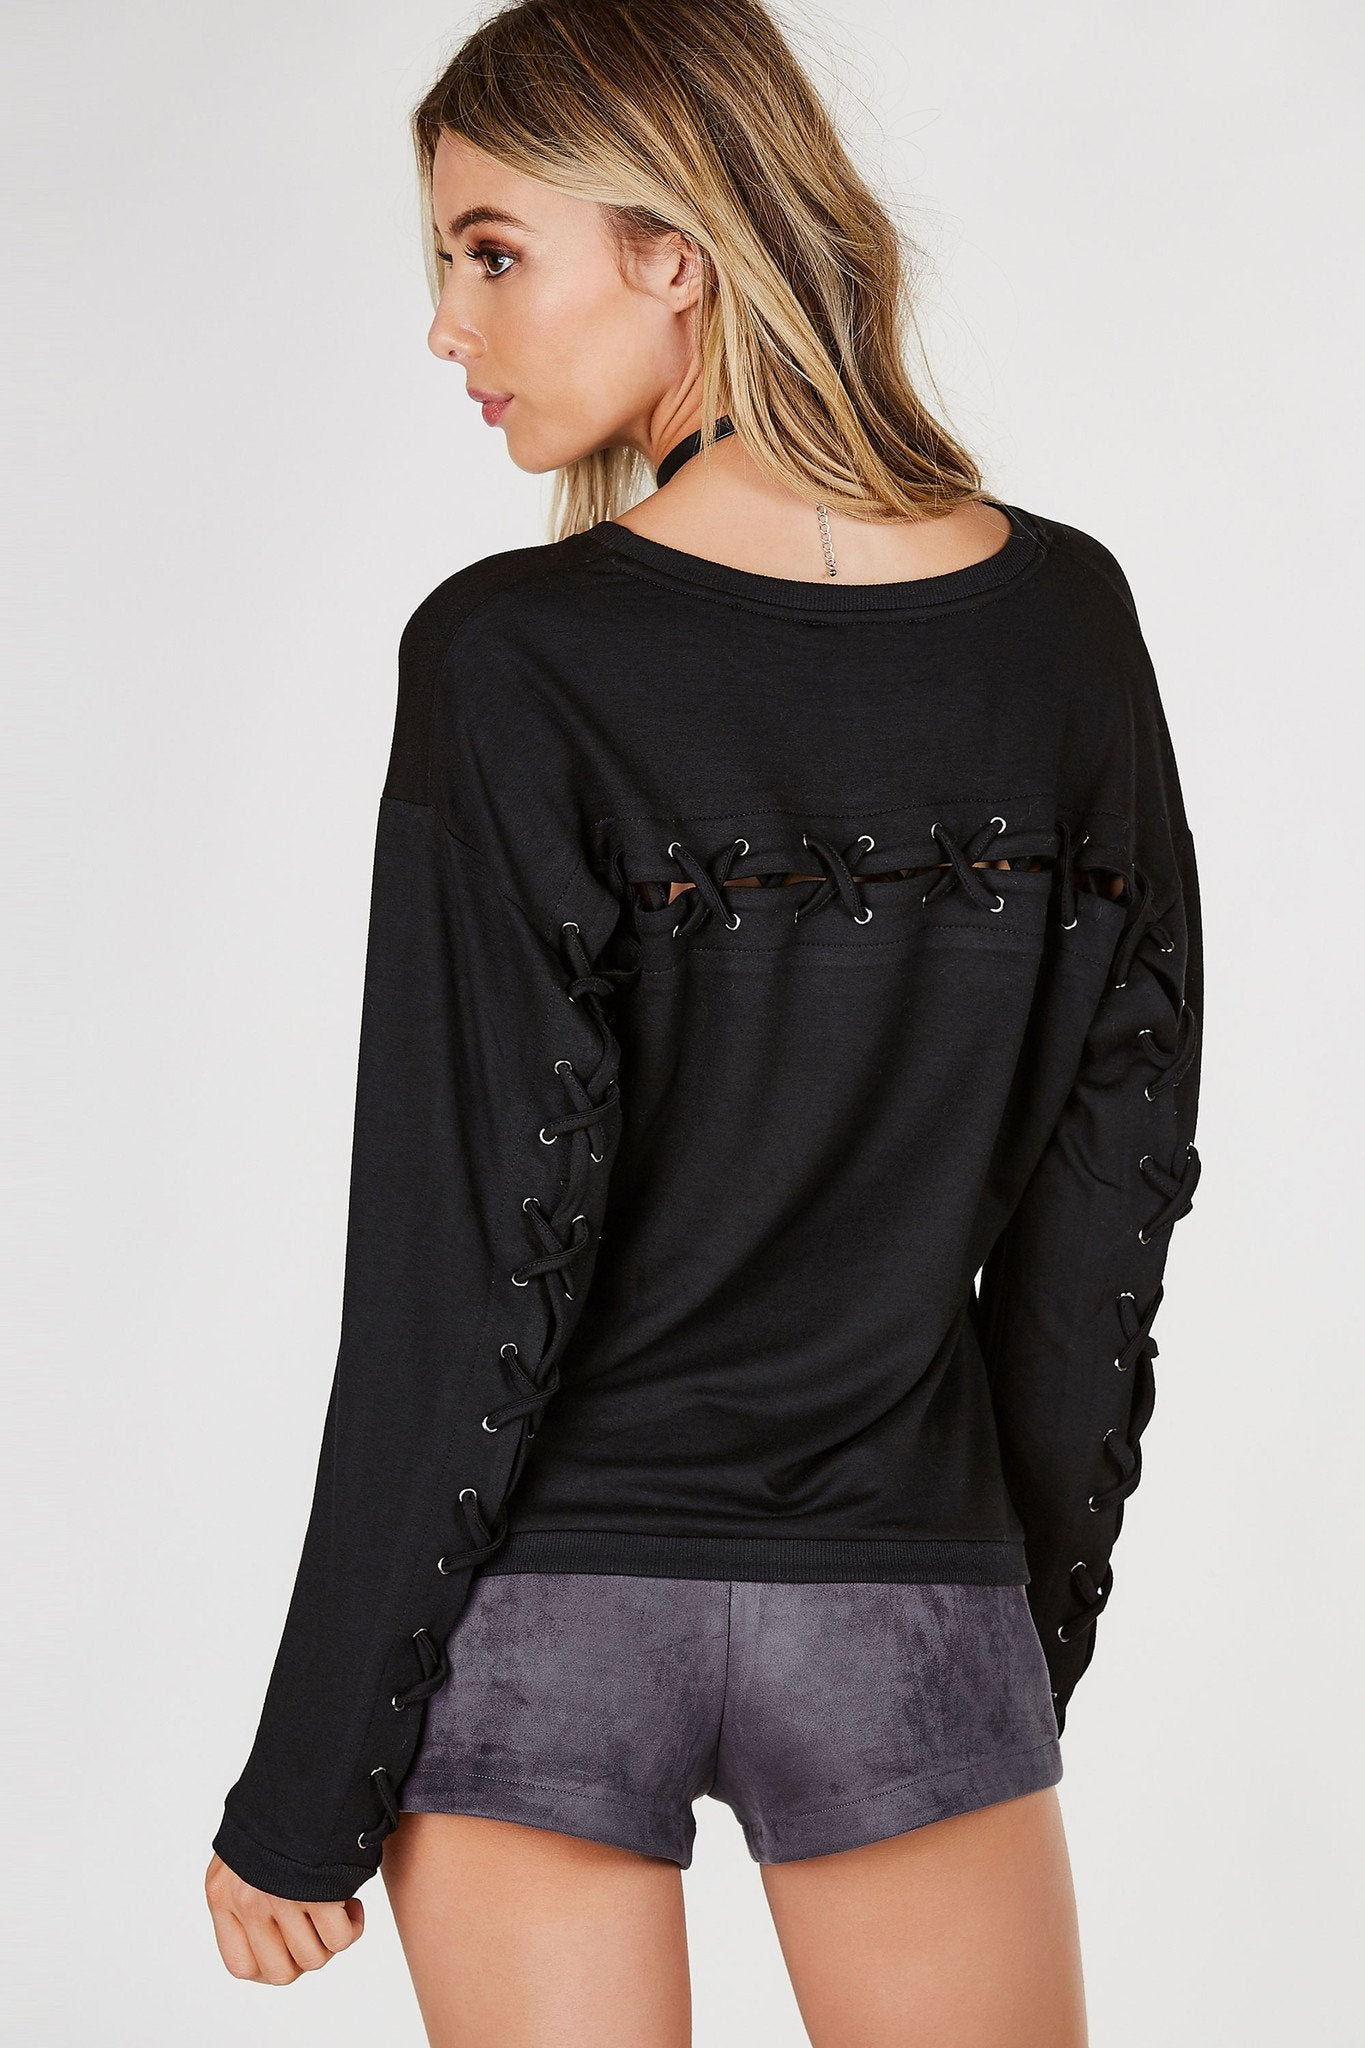 Turn Around Lace Back Top